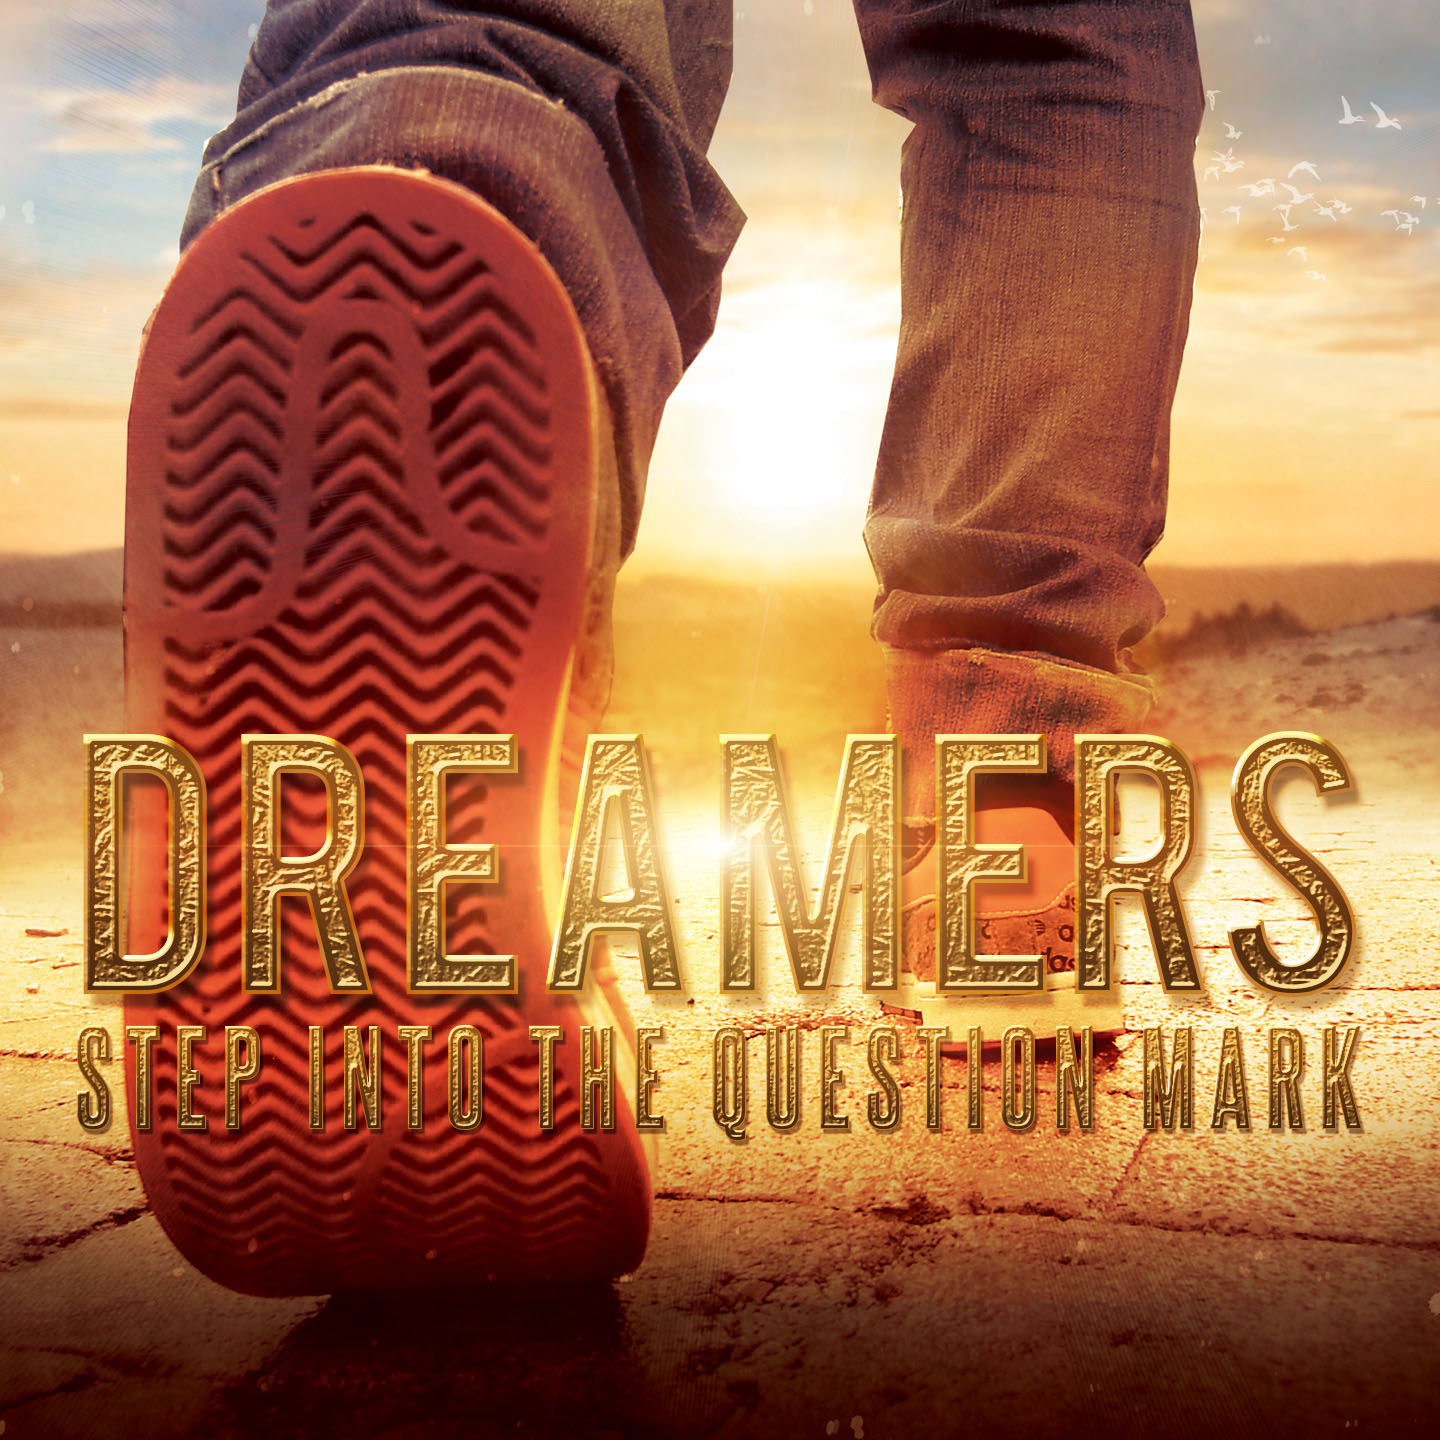 Dreamers Step Into the Question Mark